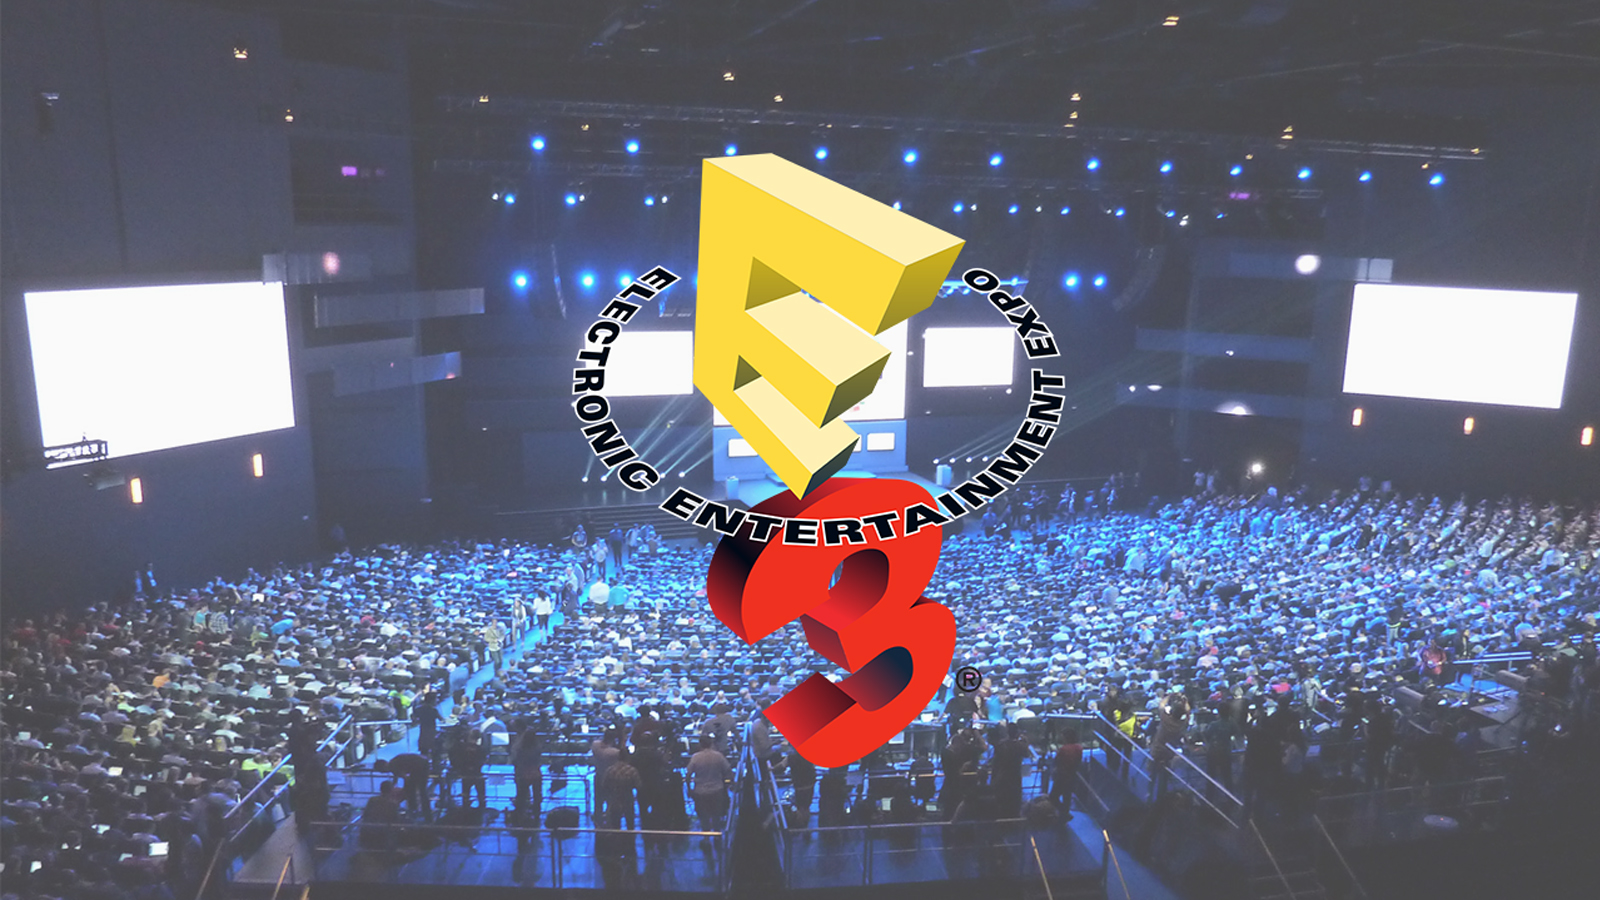 Los highlights del E3 2017, el mayor evento de gaming del año